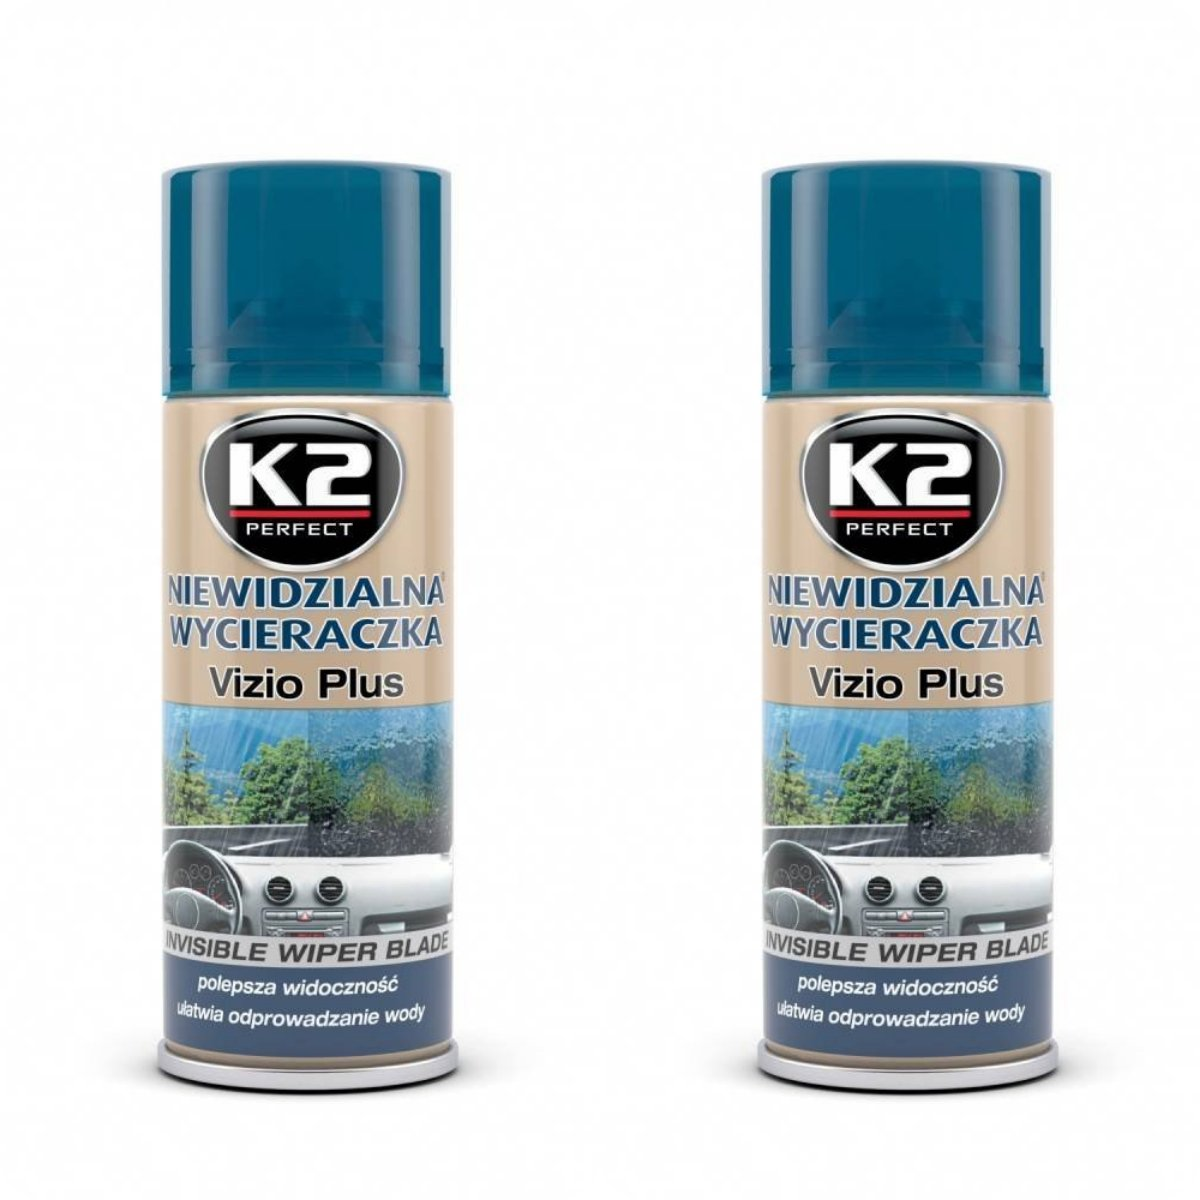 K2  vizio nanotech invisibile tergicristallo, Rain repellente spray 200  ml Rain repellente spray 200 ml Made from Poland